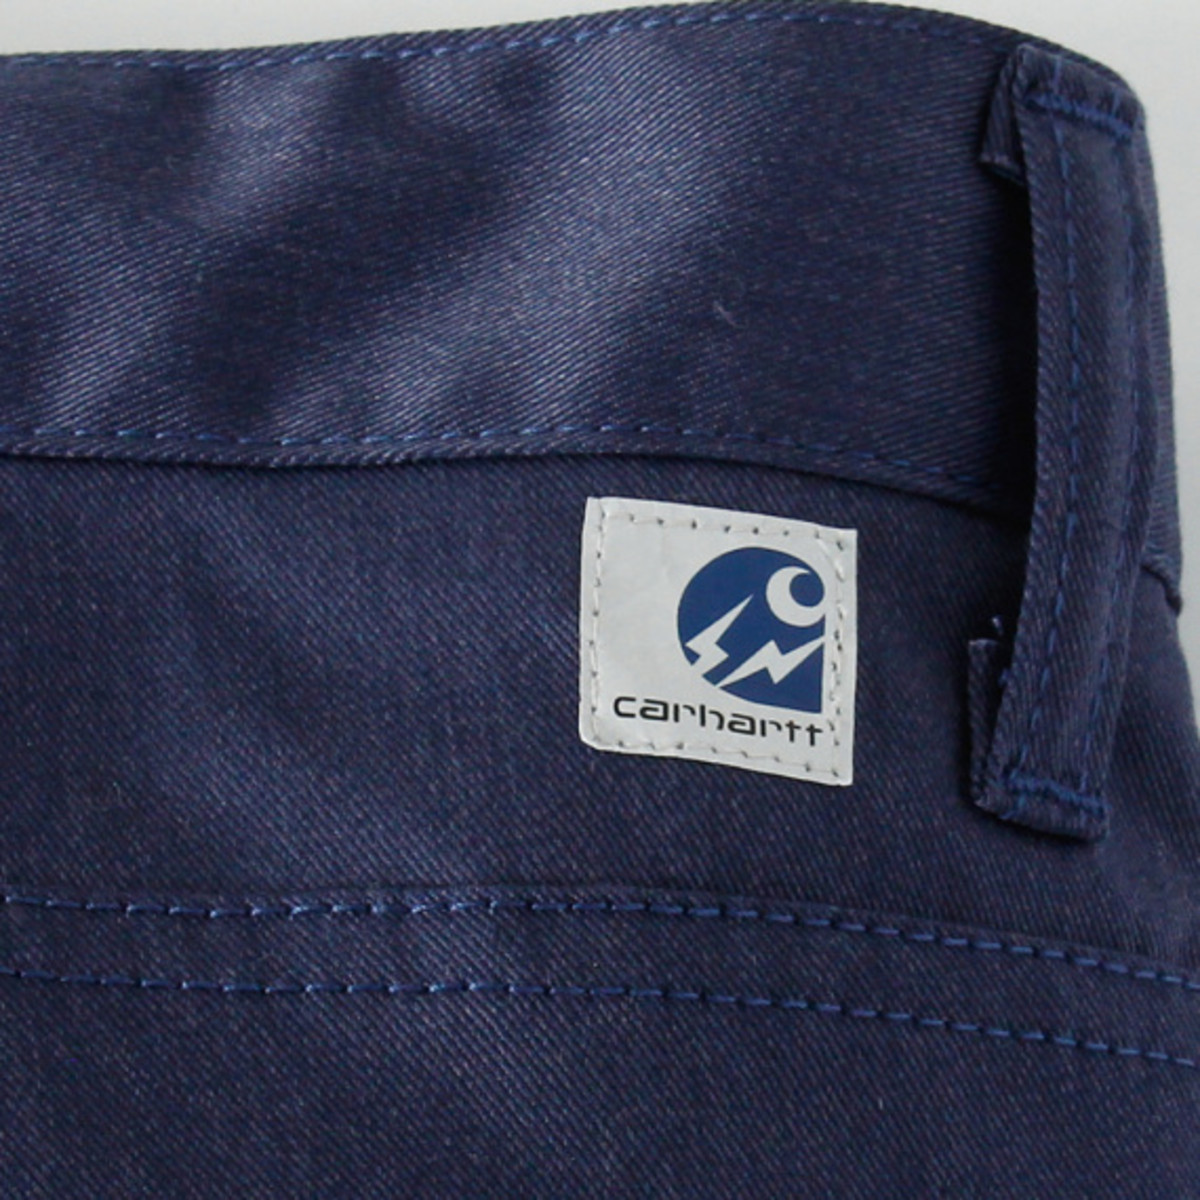 fragment-design-carhartt-wip-fall-winter-2014-collection-12